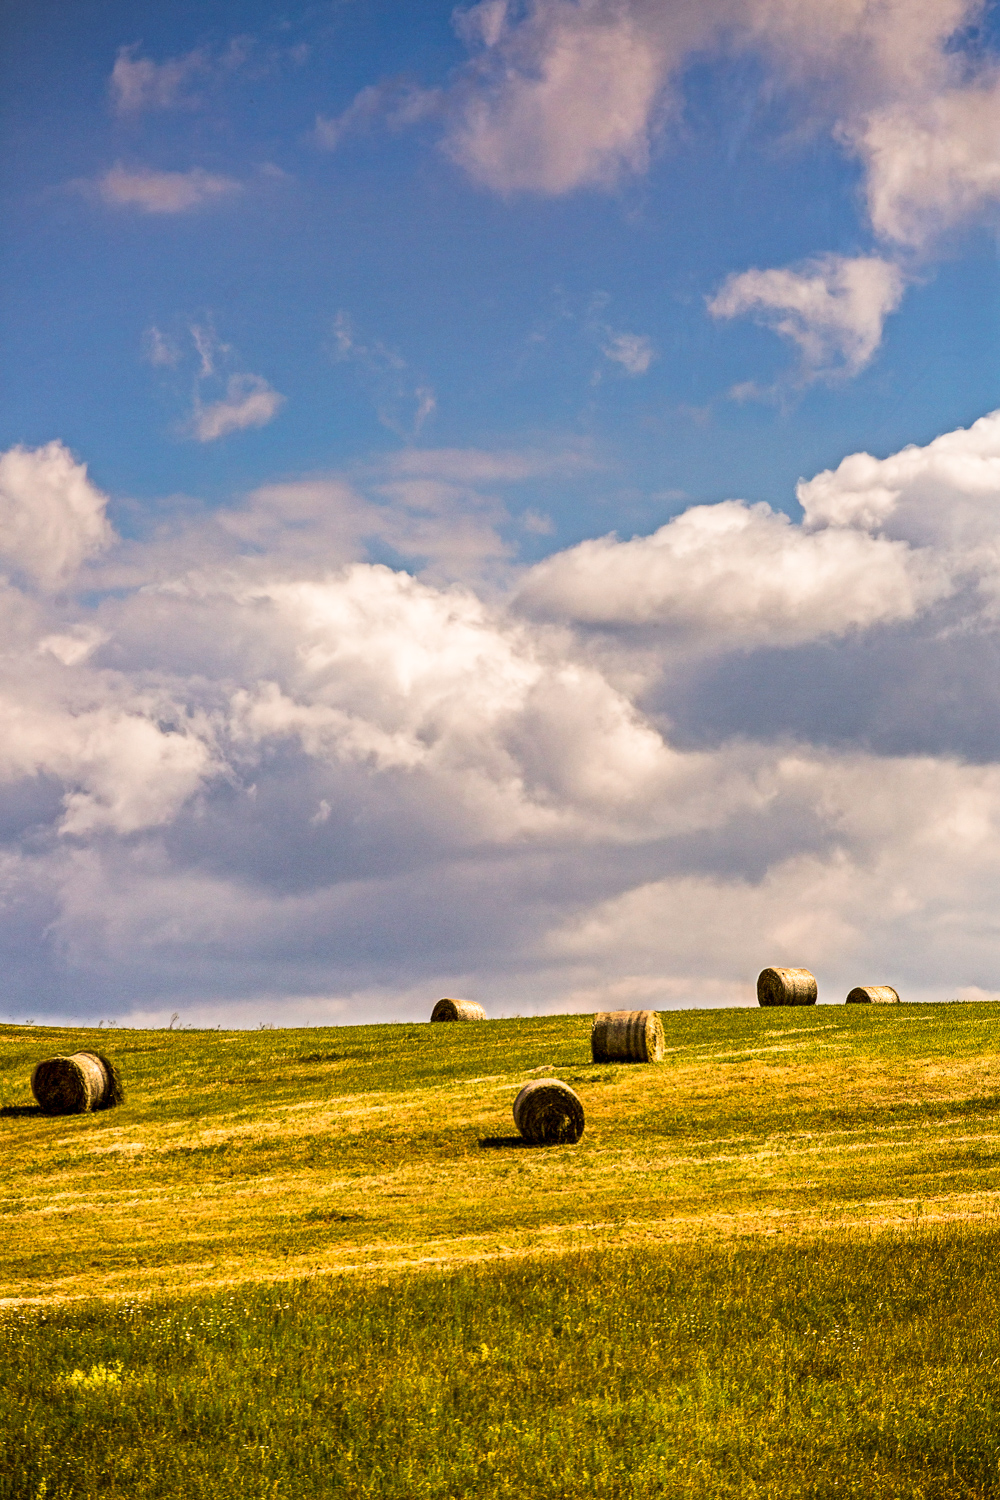 Field-Of-Hay-Bales-From-Route-To-Prague-2-4.jpg